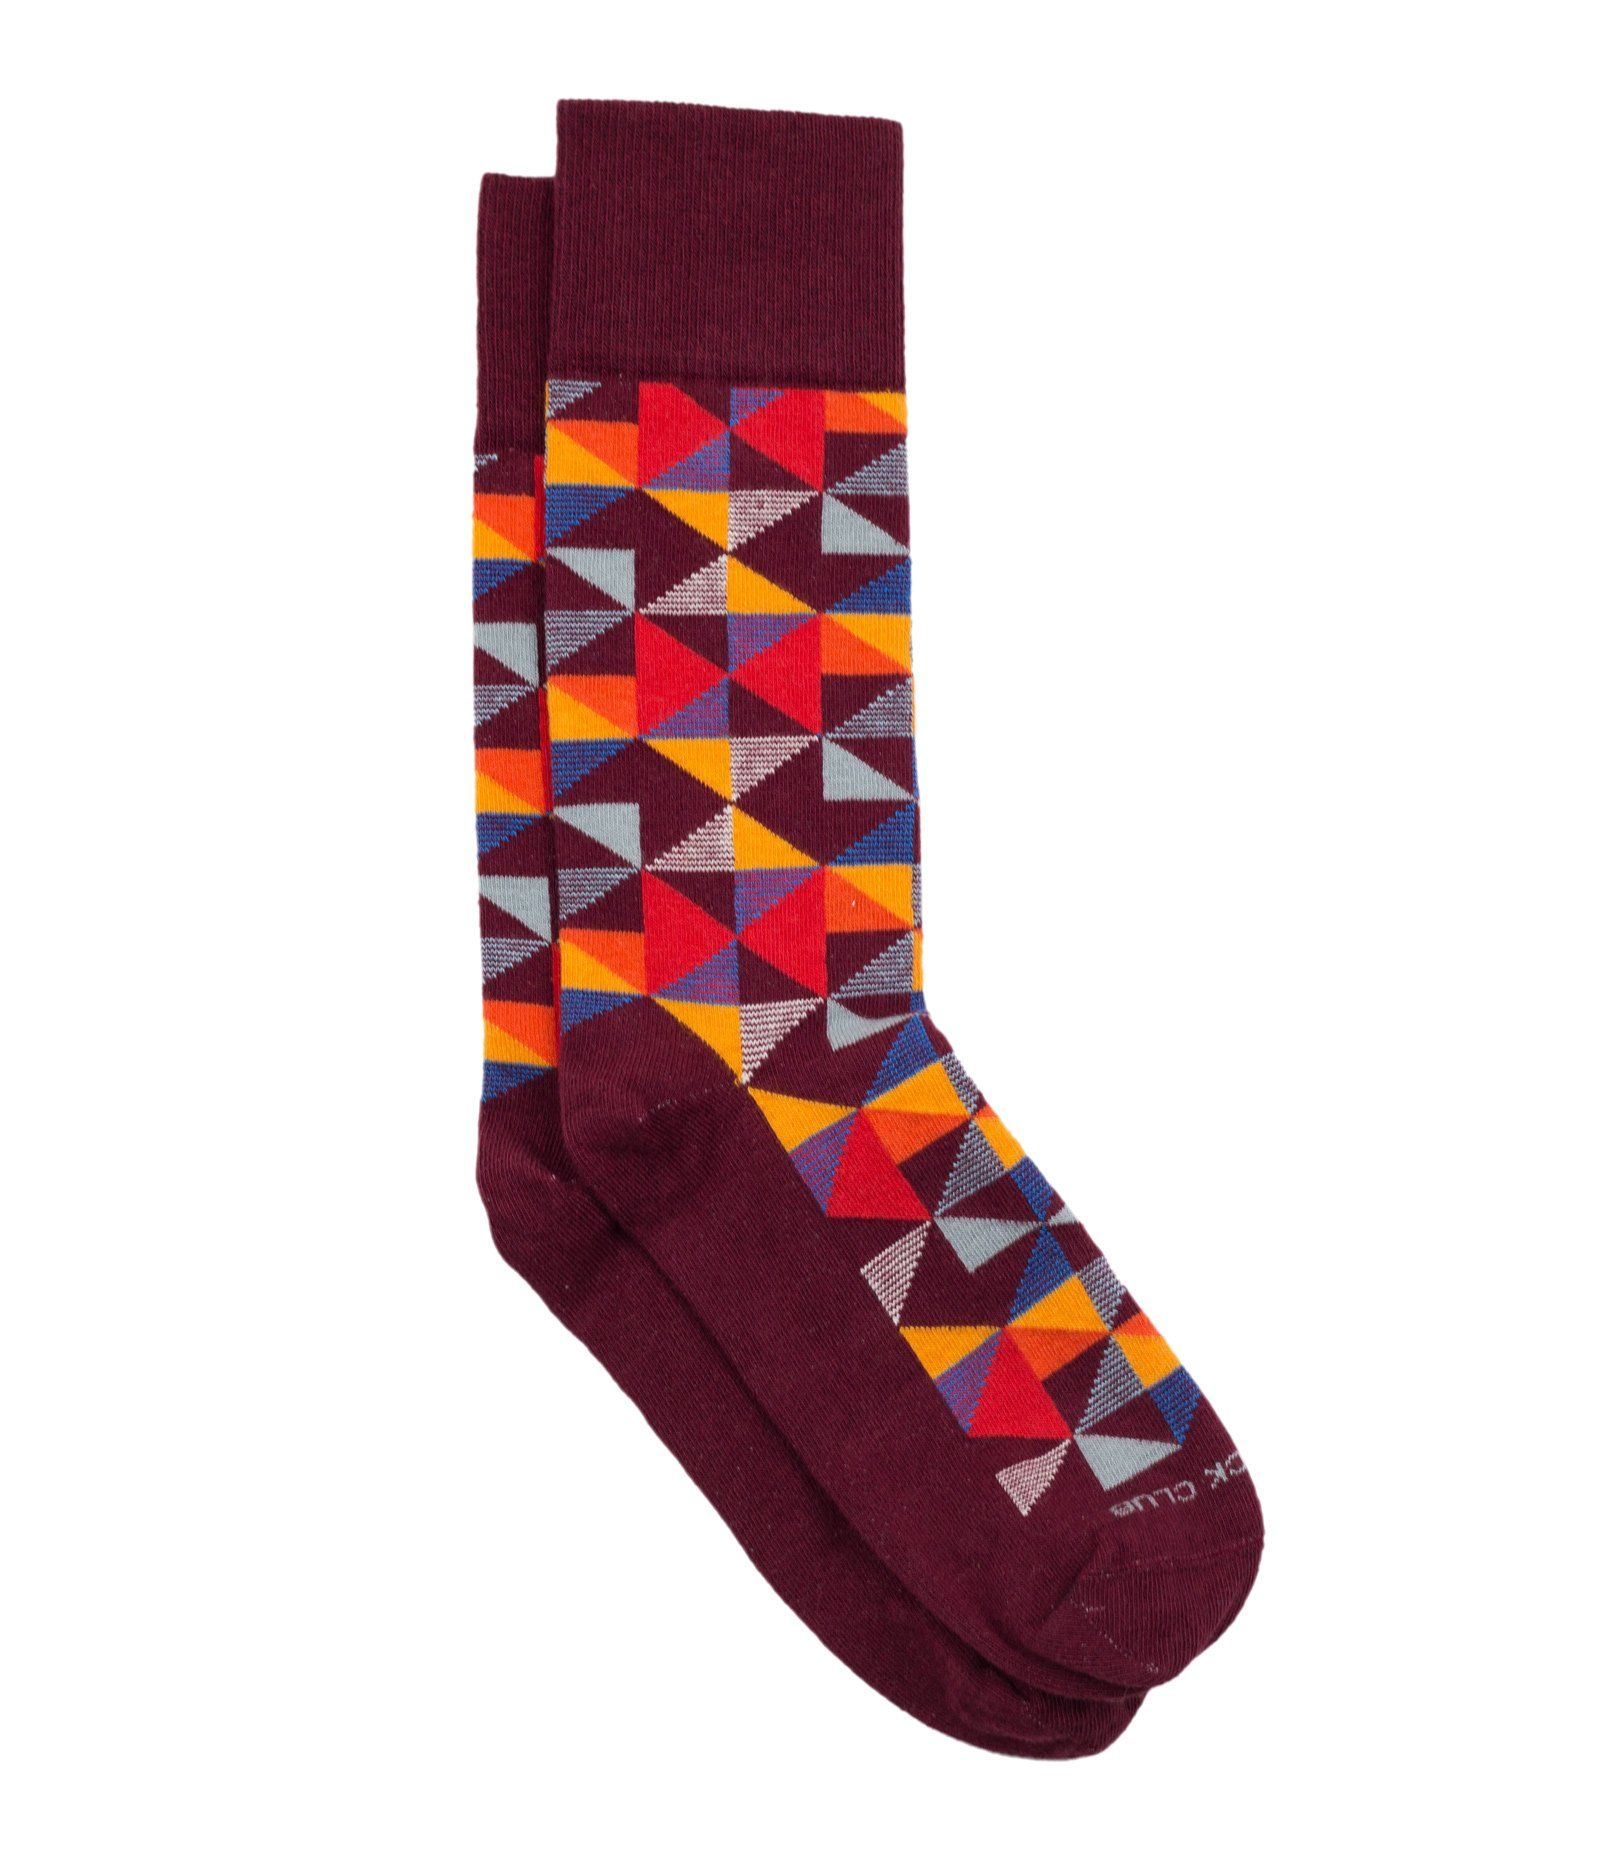 The Pinwheel - Maroon - Sock Club Store